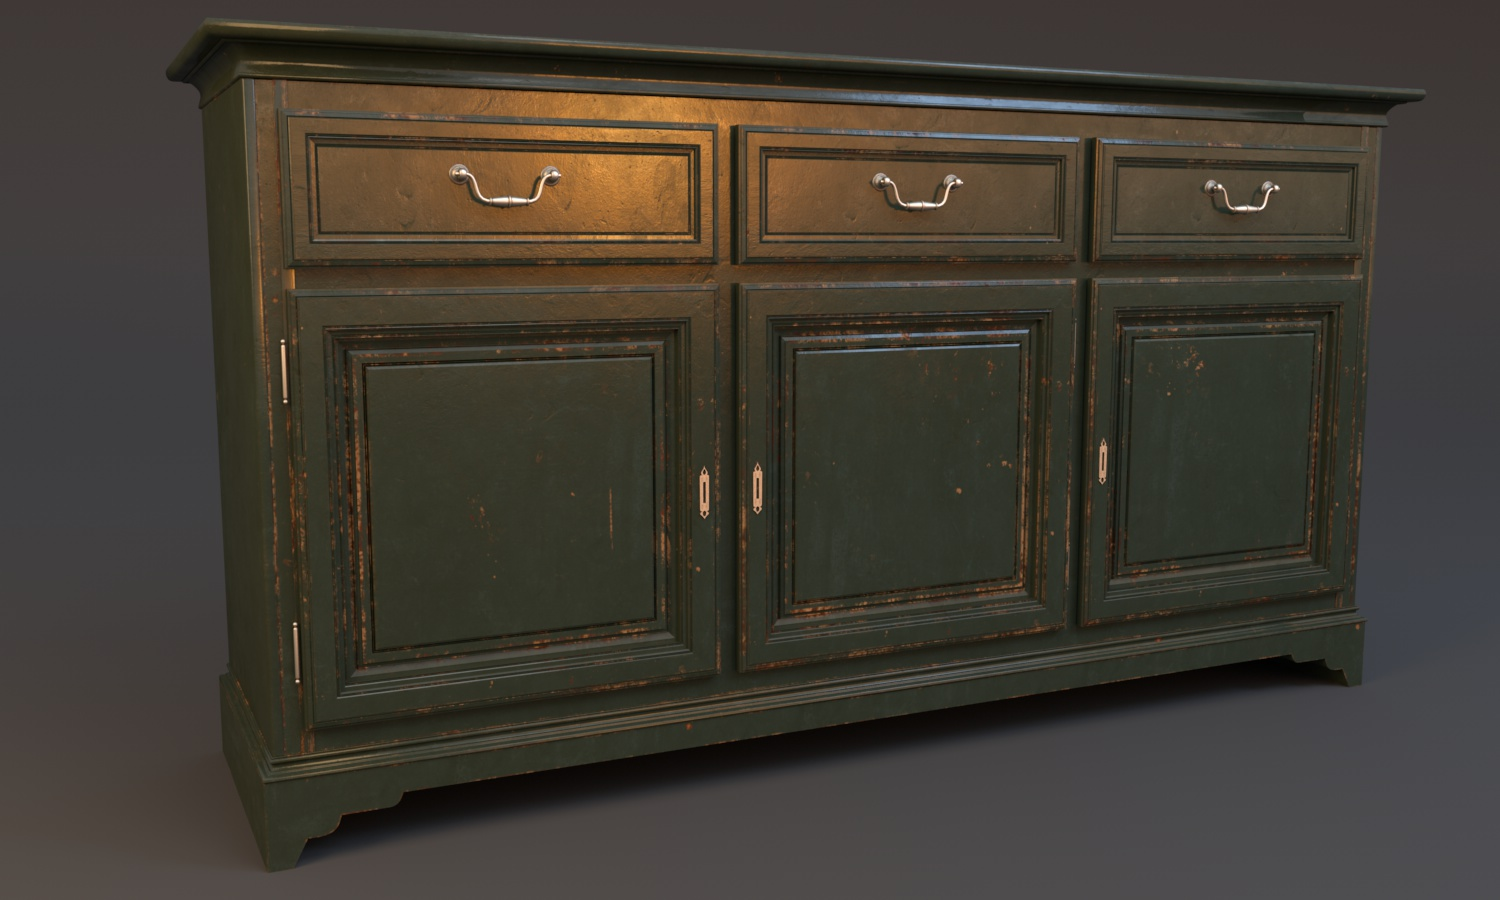 0202_Wood_Painted_sideboard_worn-out